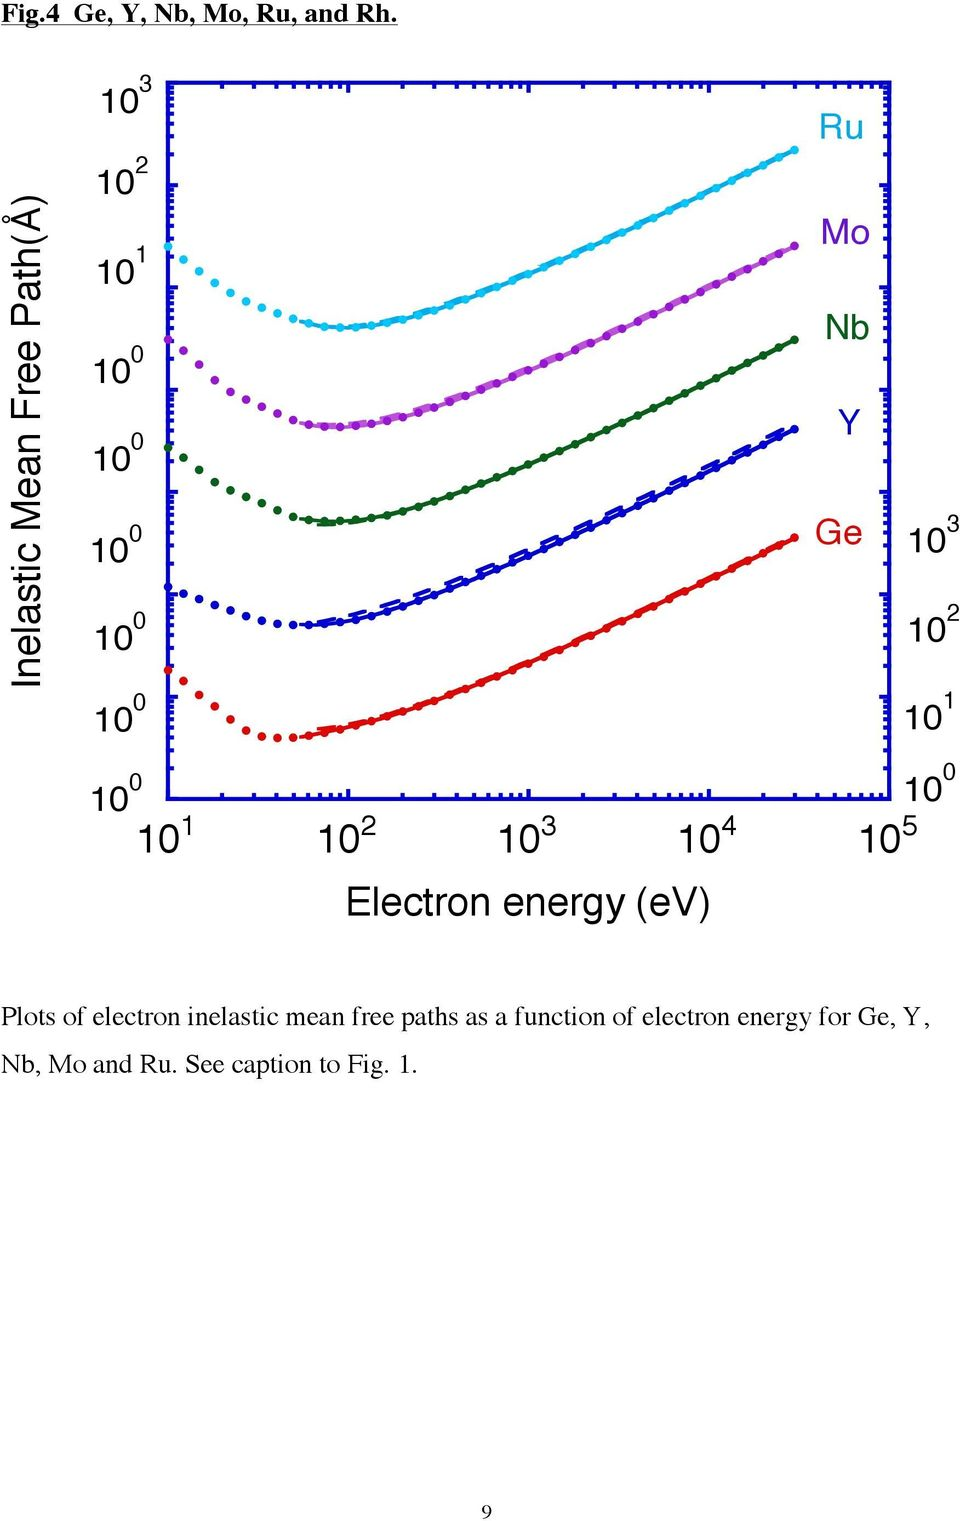 Electron energy (ev) Plots of electron inelastic mean free